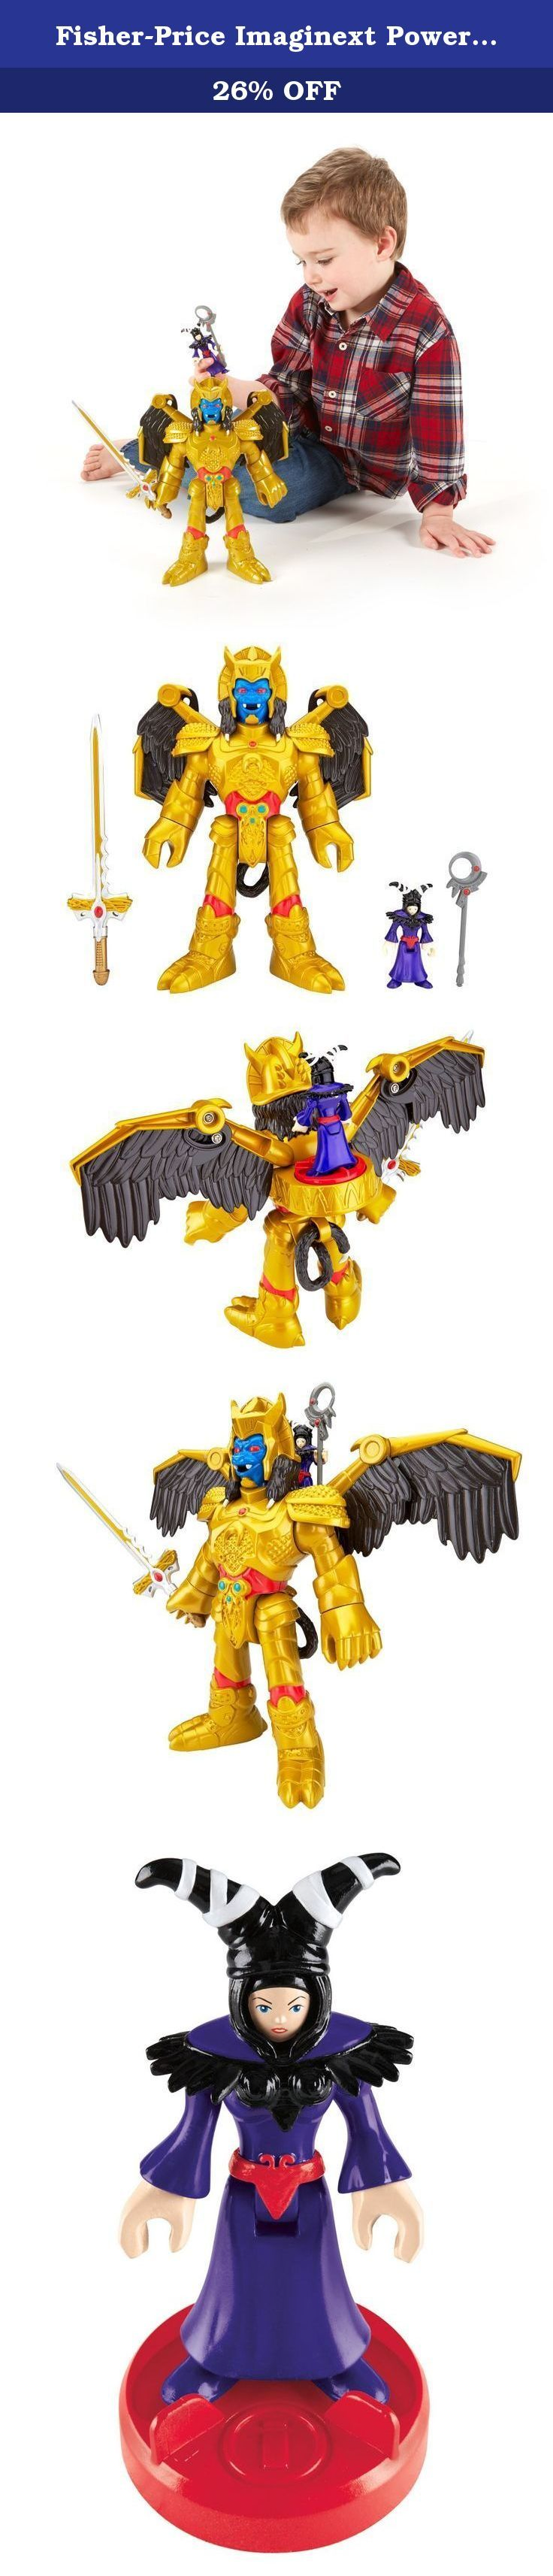 Fisher-Price Imaginext Power Rangers Goldar And Rita. The Deluxe Goldar and Sorceress Rita Repulsa figures will lead the evil forces as young Mighty Morphin Power Rangers fans recreate epic battle scenes. Turn the Power Pad on Goldar's back to release his wings and move his right arm up and down for sword-fighting action! It's up to young imaginations to figure out how the Mighty Morphin Power Rangers will defeat these 2 villains. Go Go Power Rangers!!.